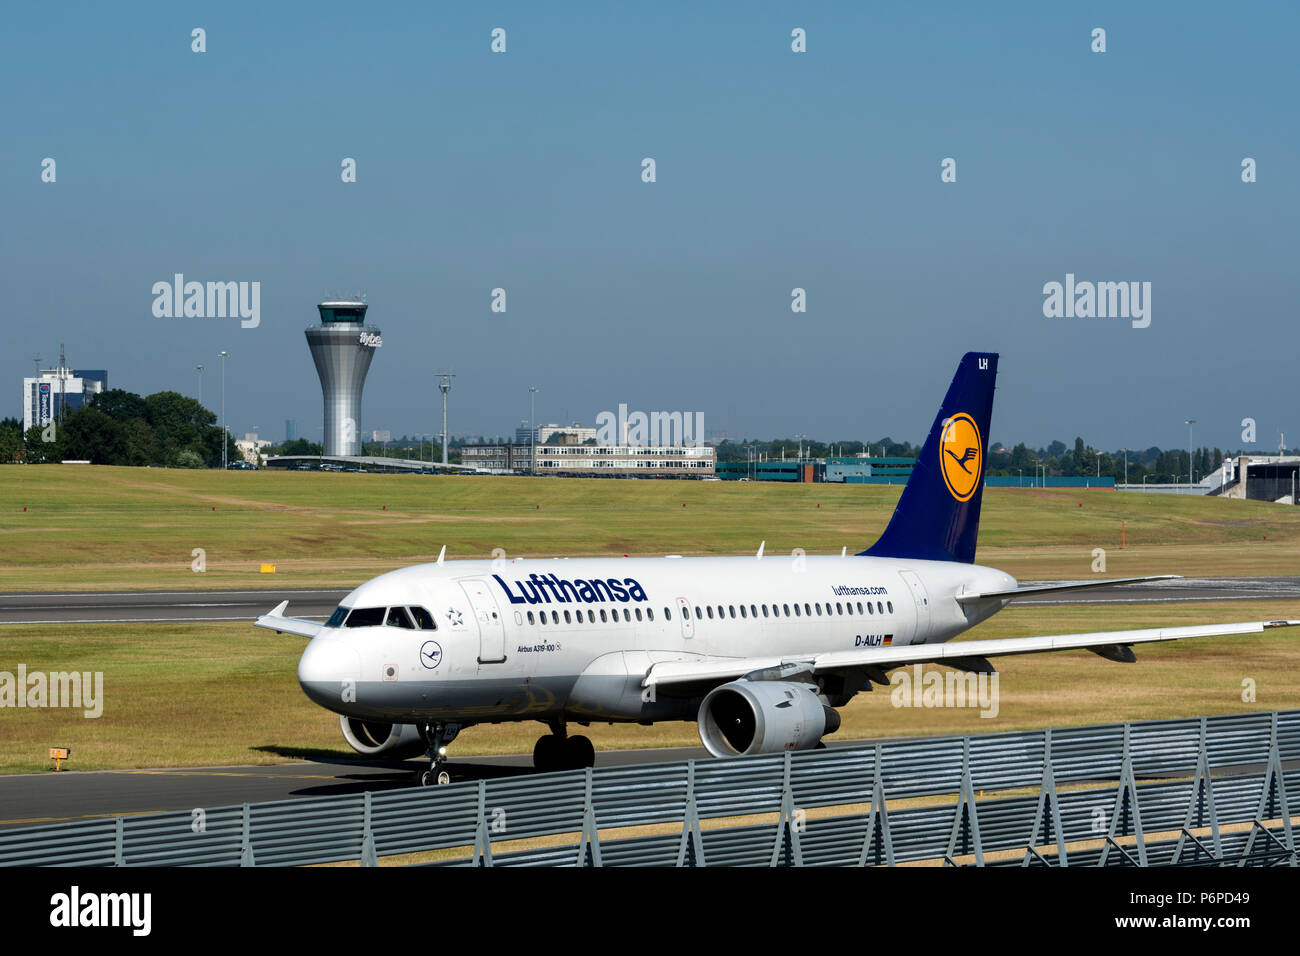 Lufthansa Airbus A319-114 taxiing for departure at Birmingham Airport, UK (D-AILH) - Stock Image